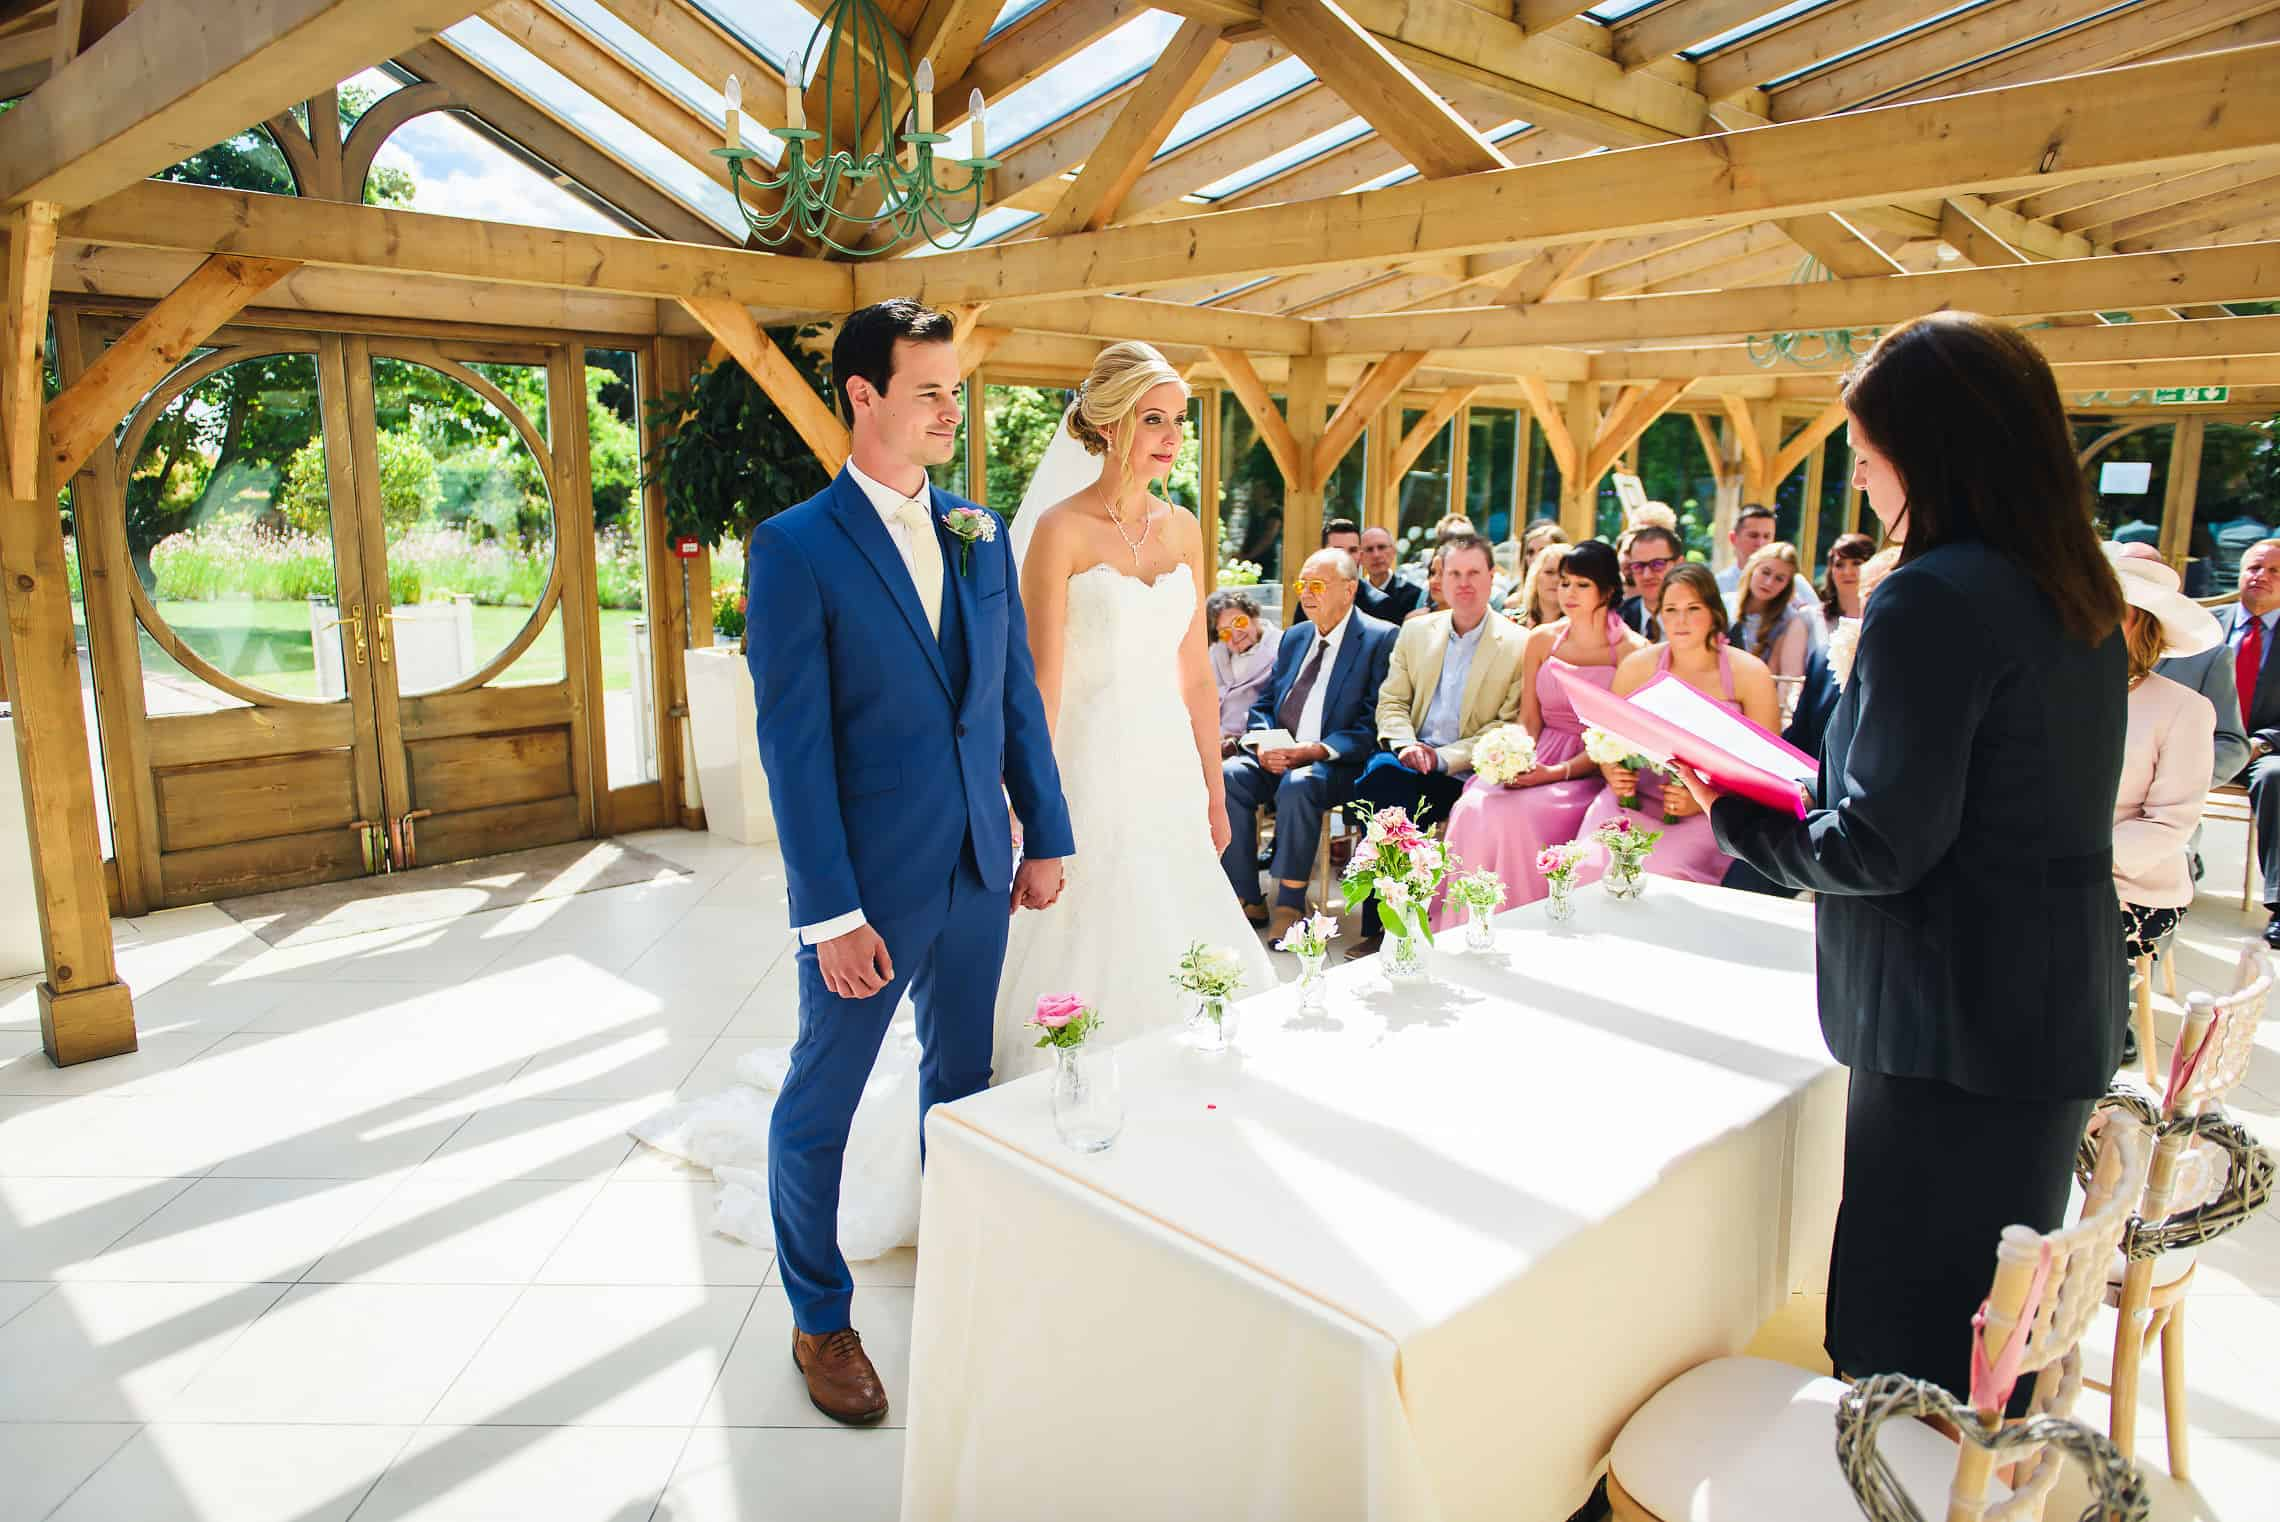 gaynes_park_wedding_lm_justin_bailey_photography_007